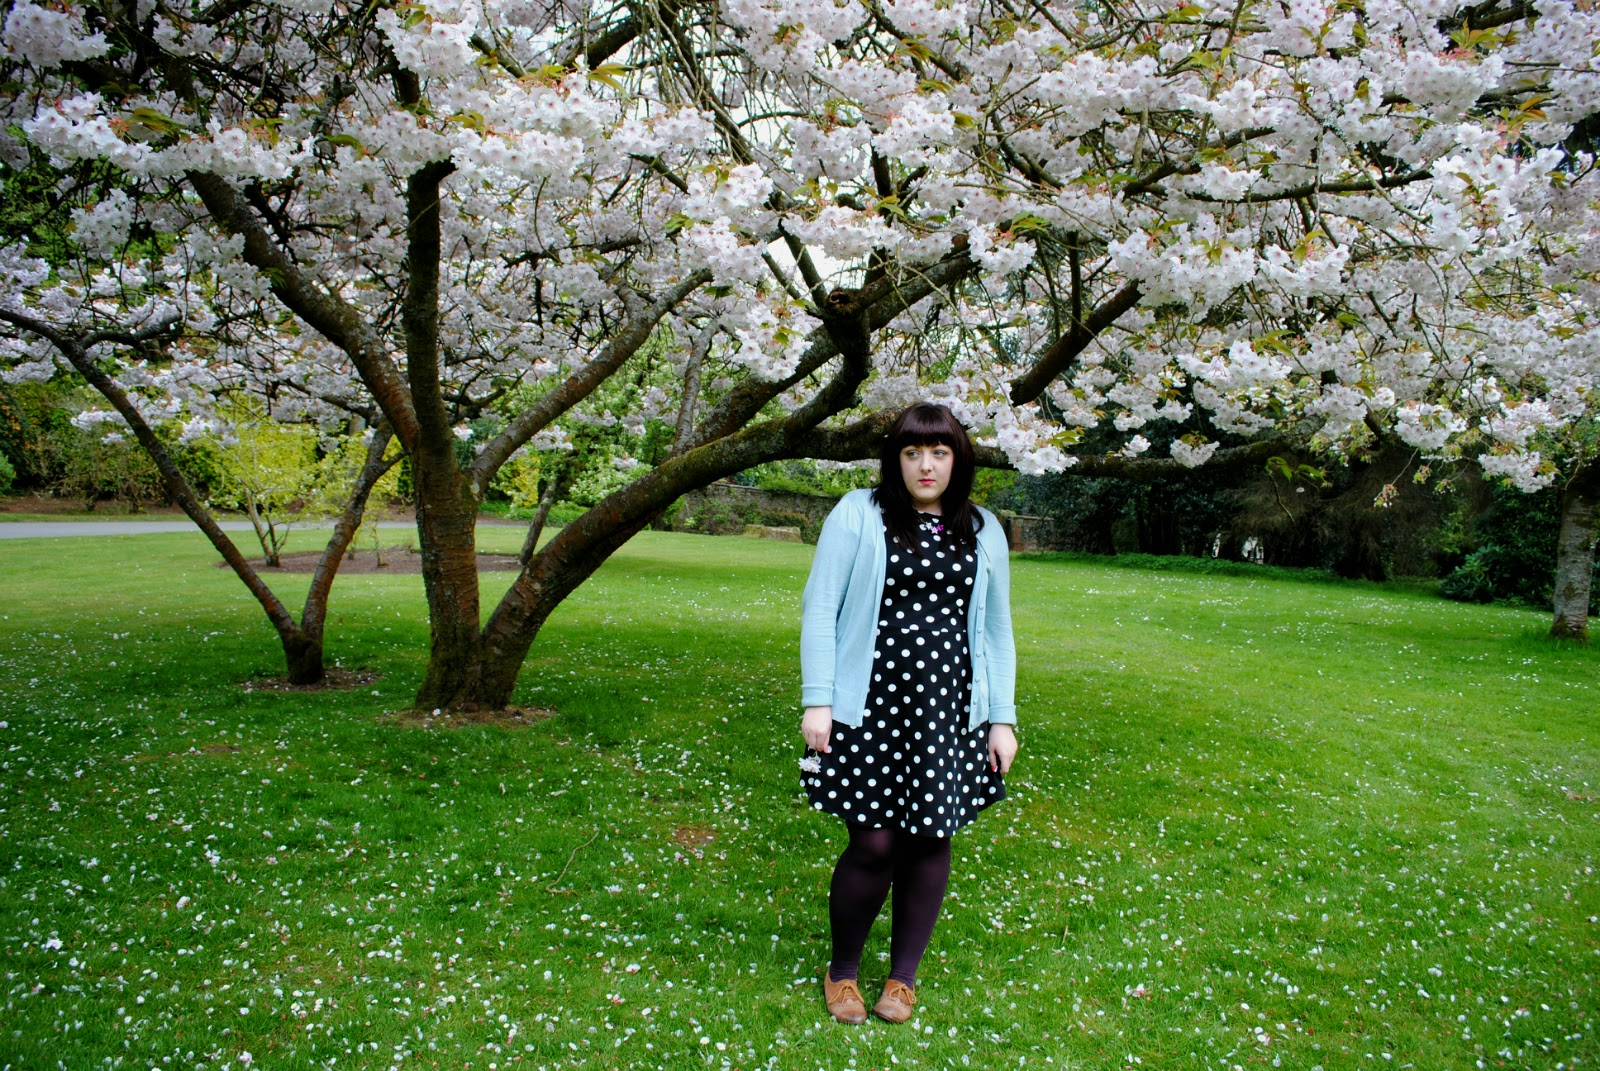 fashion photography outfit ootd polka dots cherry blossom